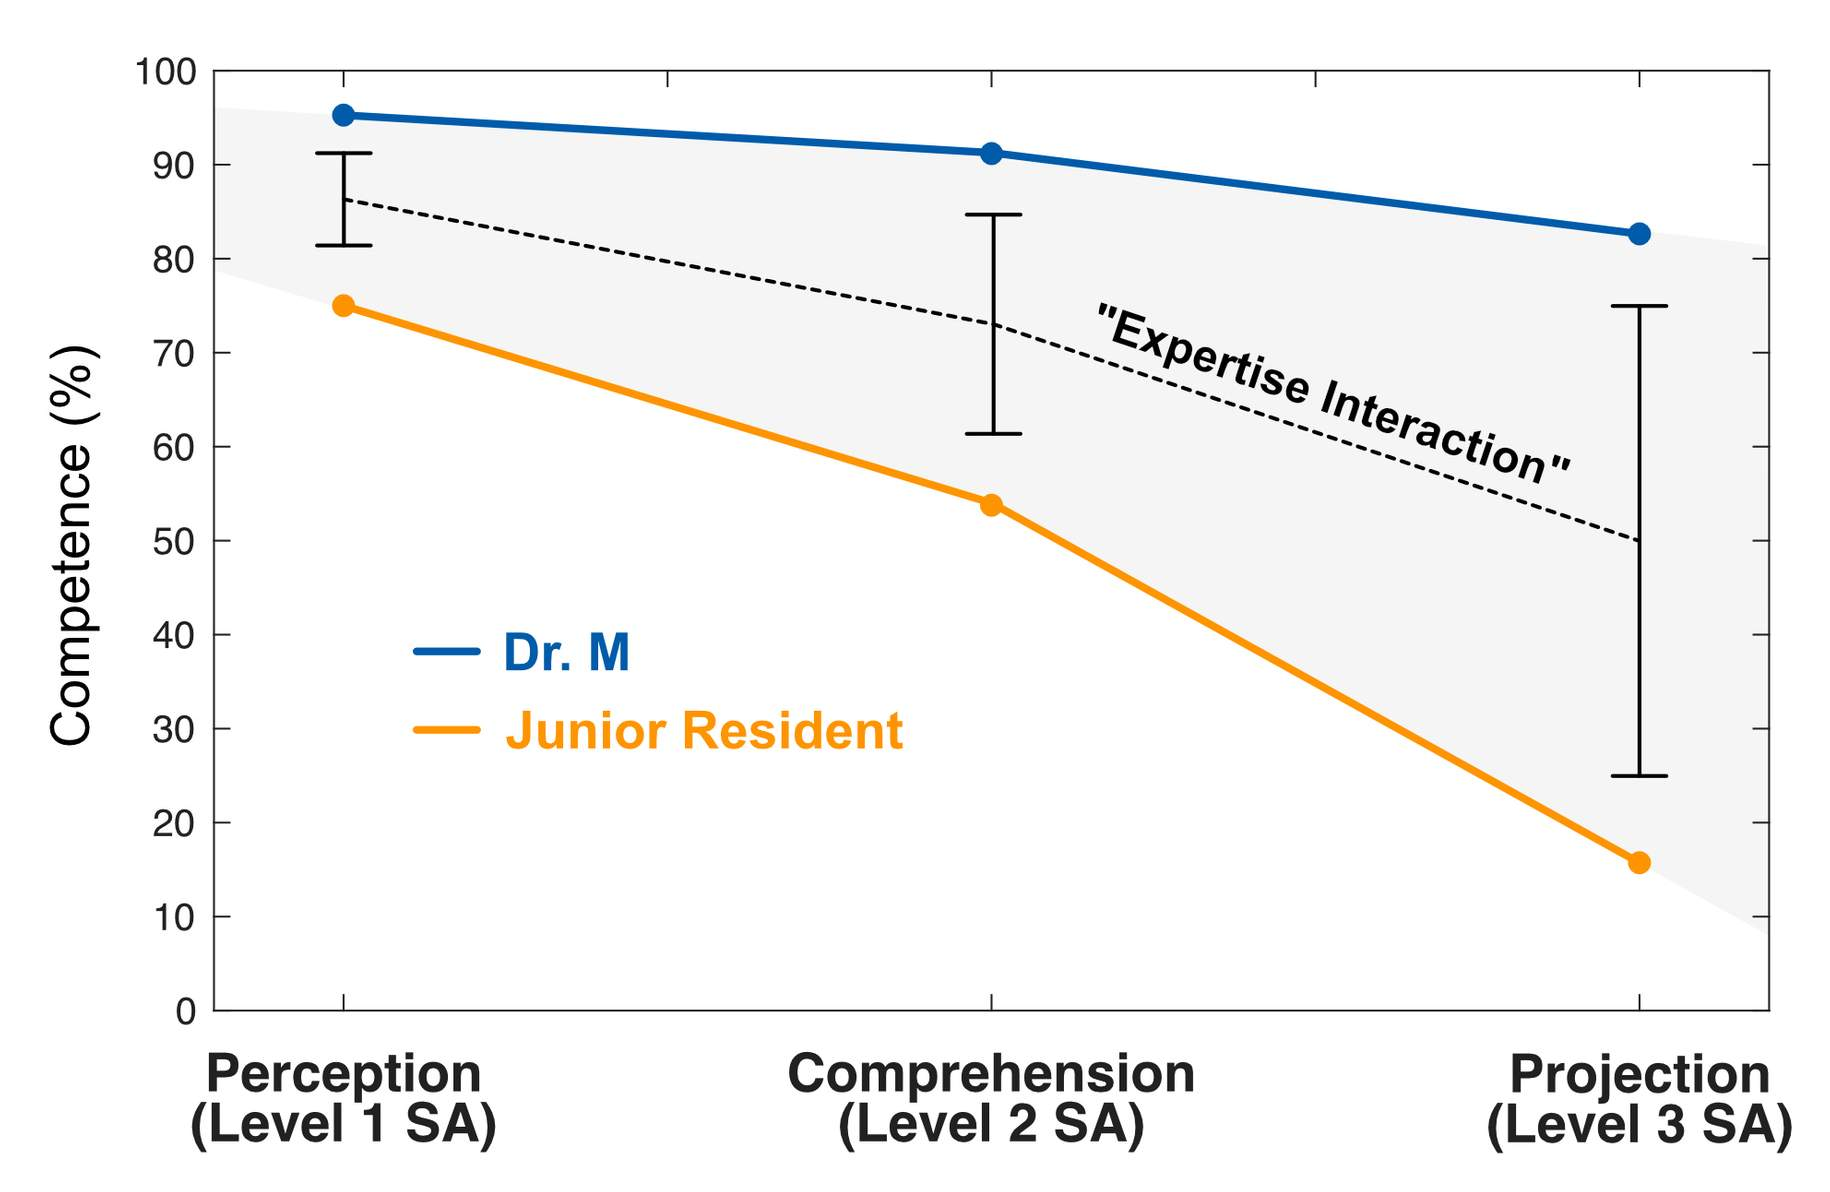 """Figure 2: Interaction effect between surgical expertise and nontechnical skill, mapped onto Endsley's 3-level model. The gap between an experienced surgeon and a junior resident increases with higher levels of SA, producing the """"expertise interaction."""""""